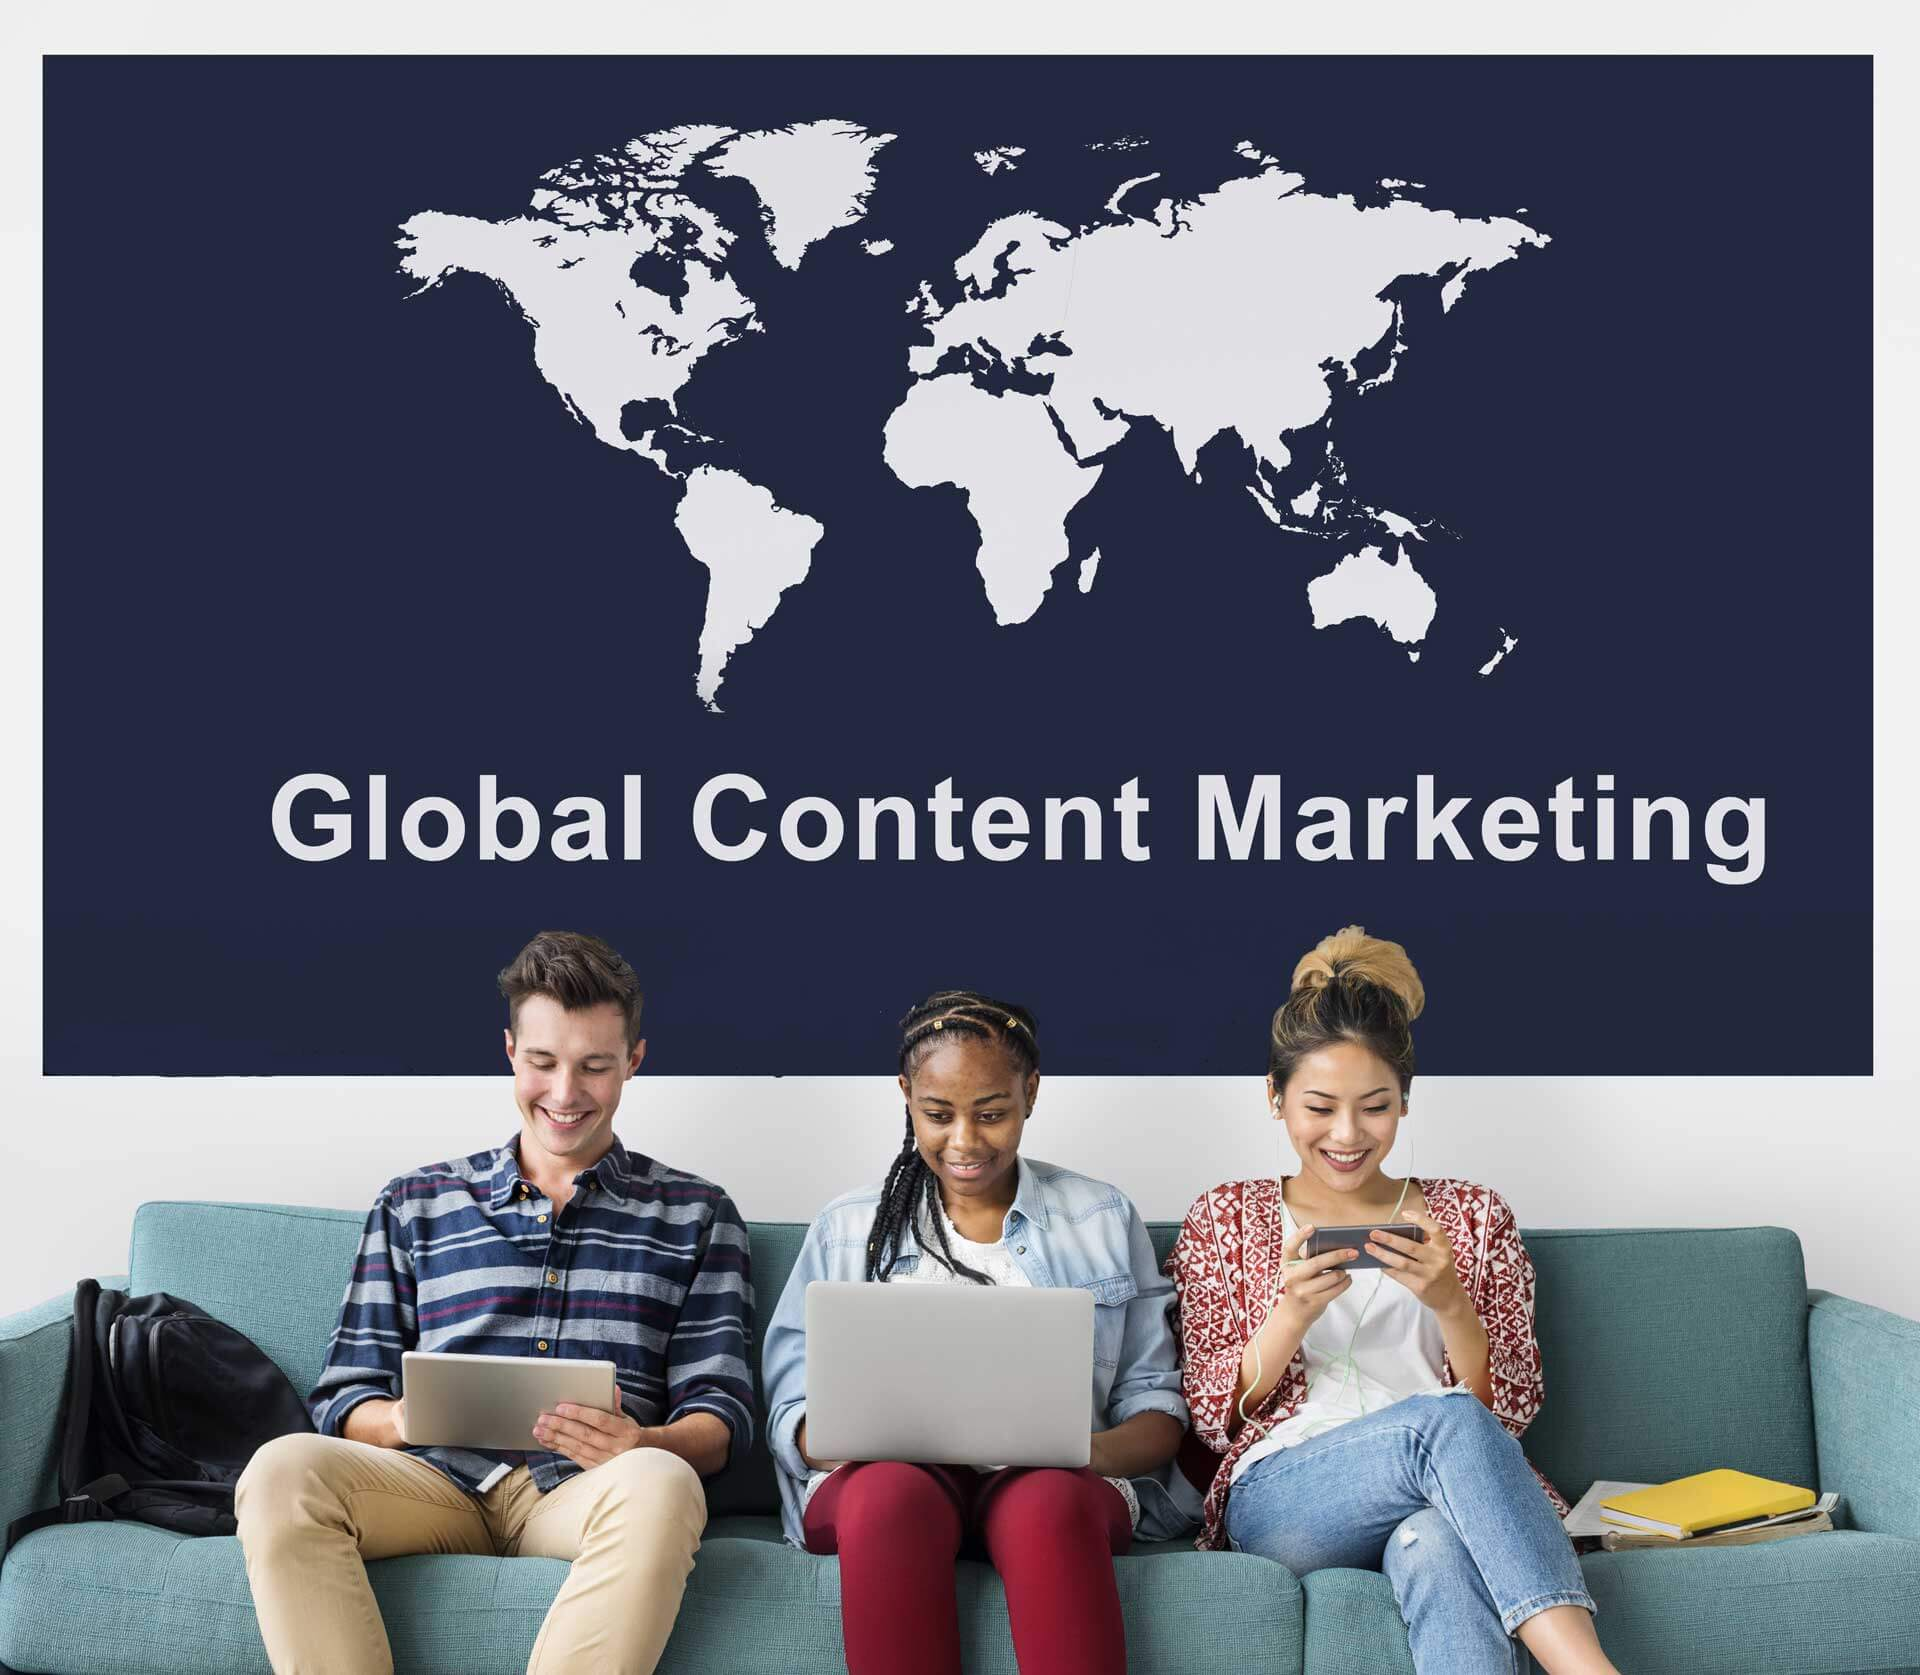 global-content-marketing-ss-1920